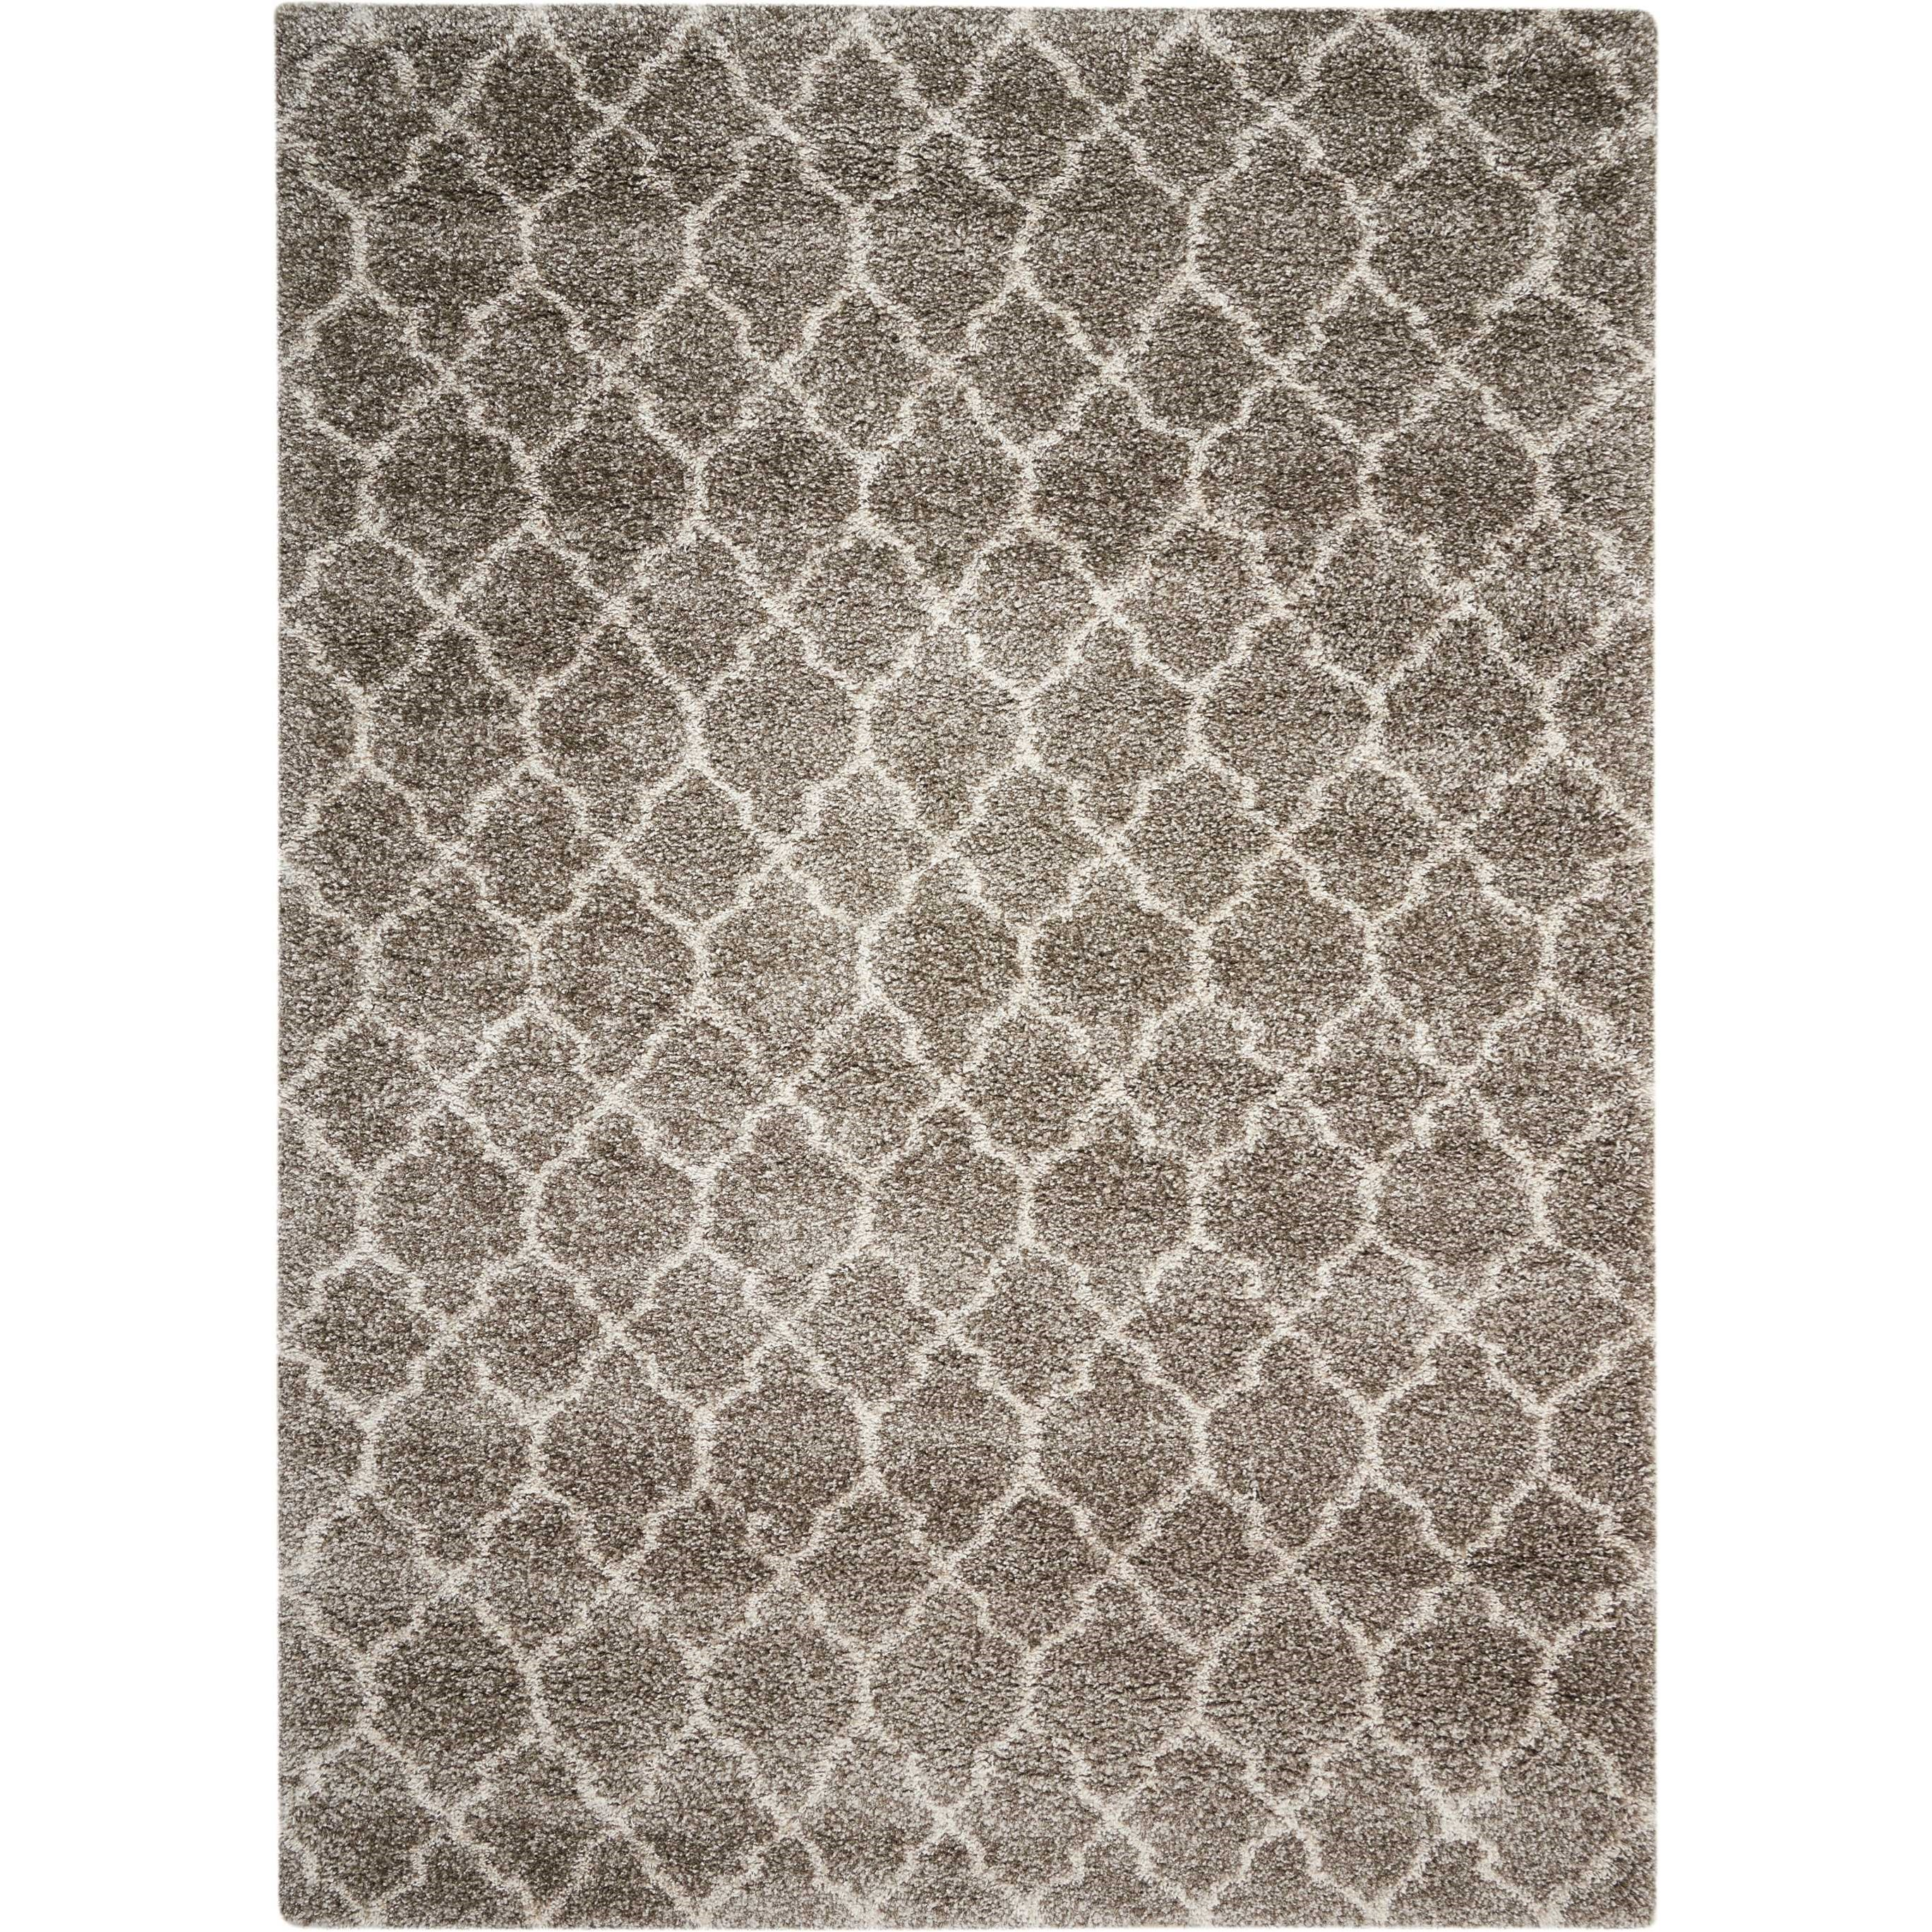 """Amore 7'10"""" x 10'10"""" Stone Rectangle Rug by Nourison at Home Collections Furniture"""